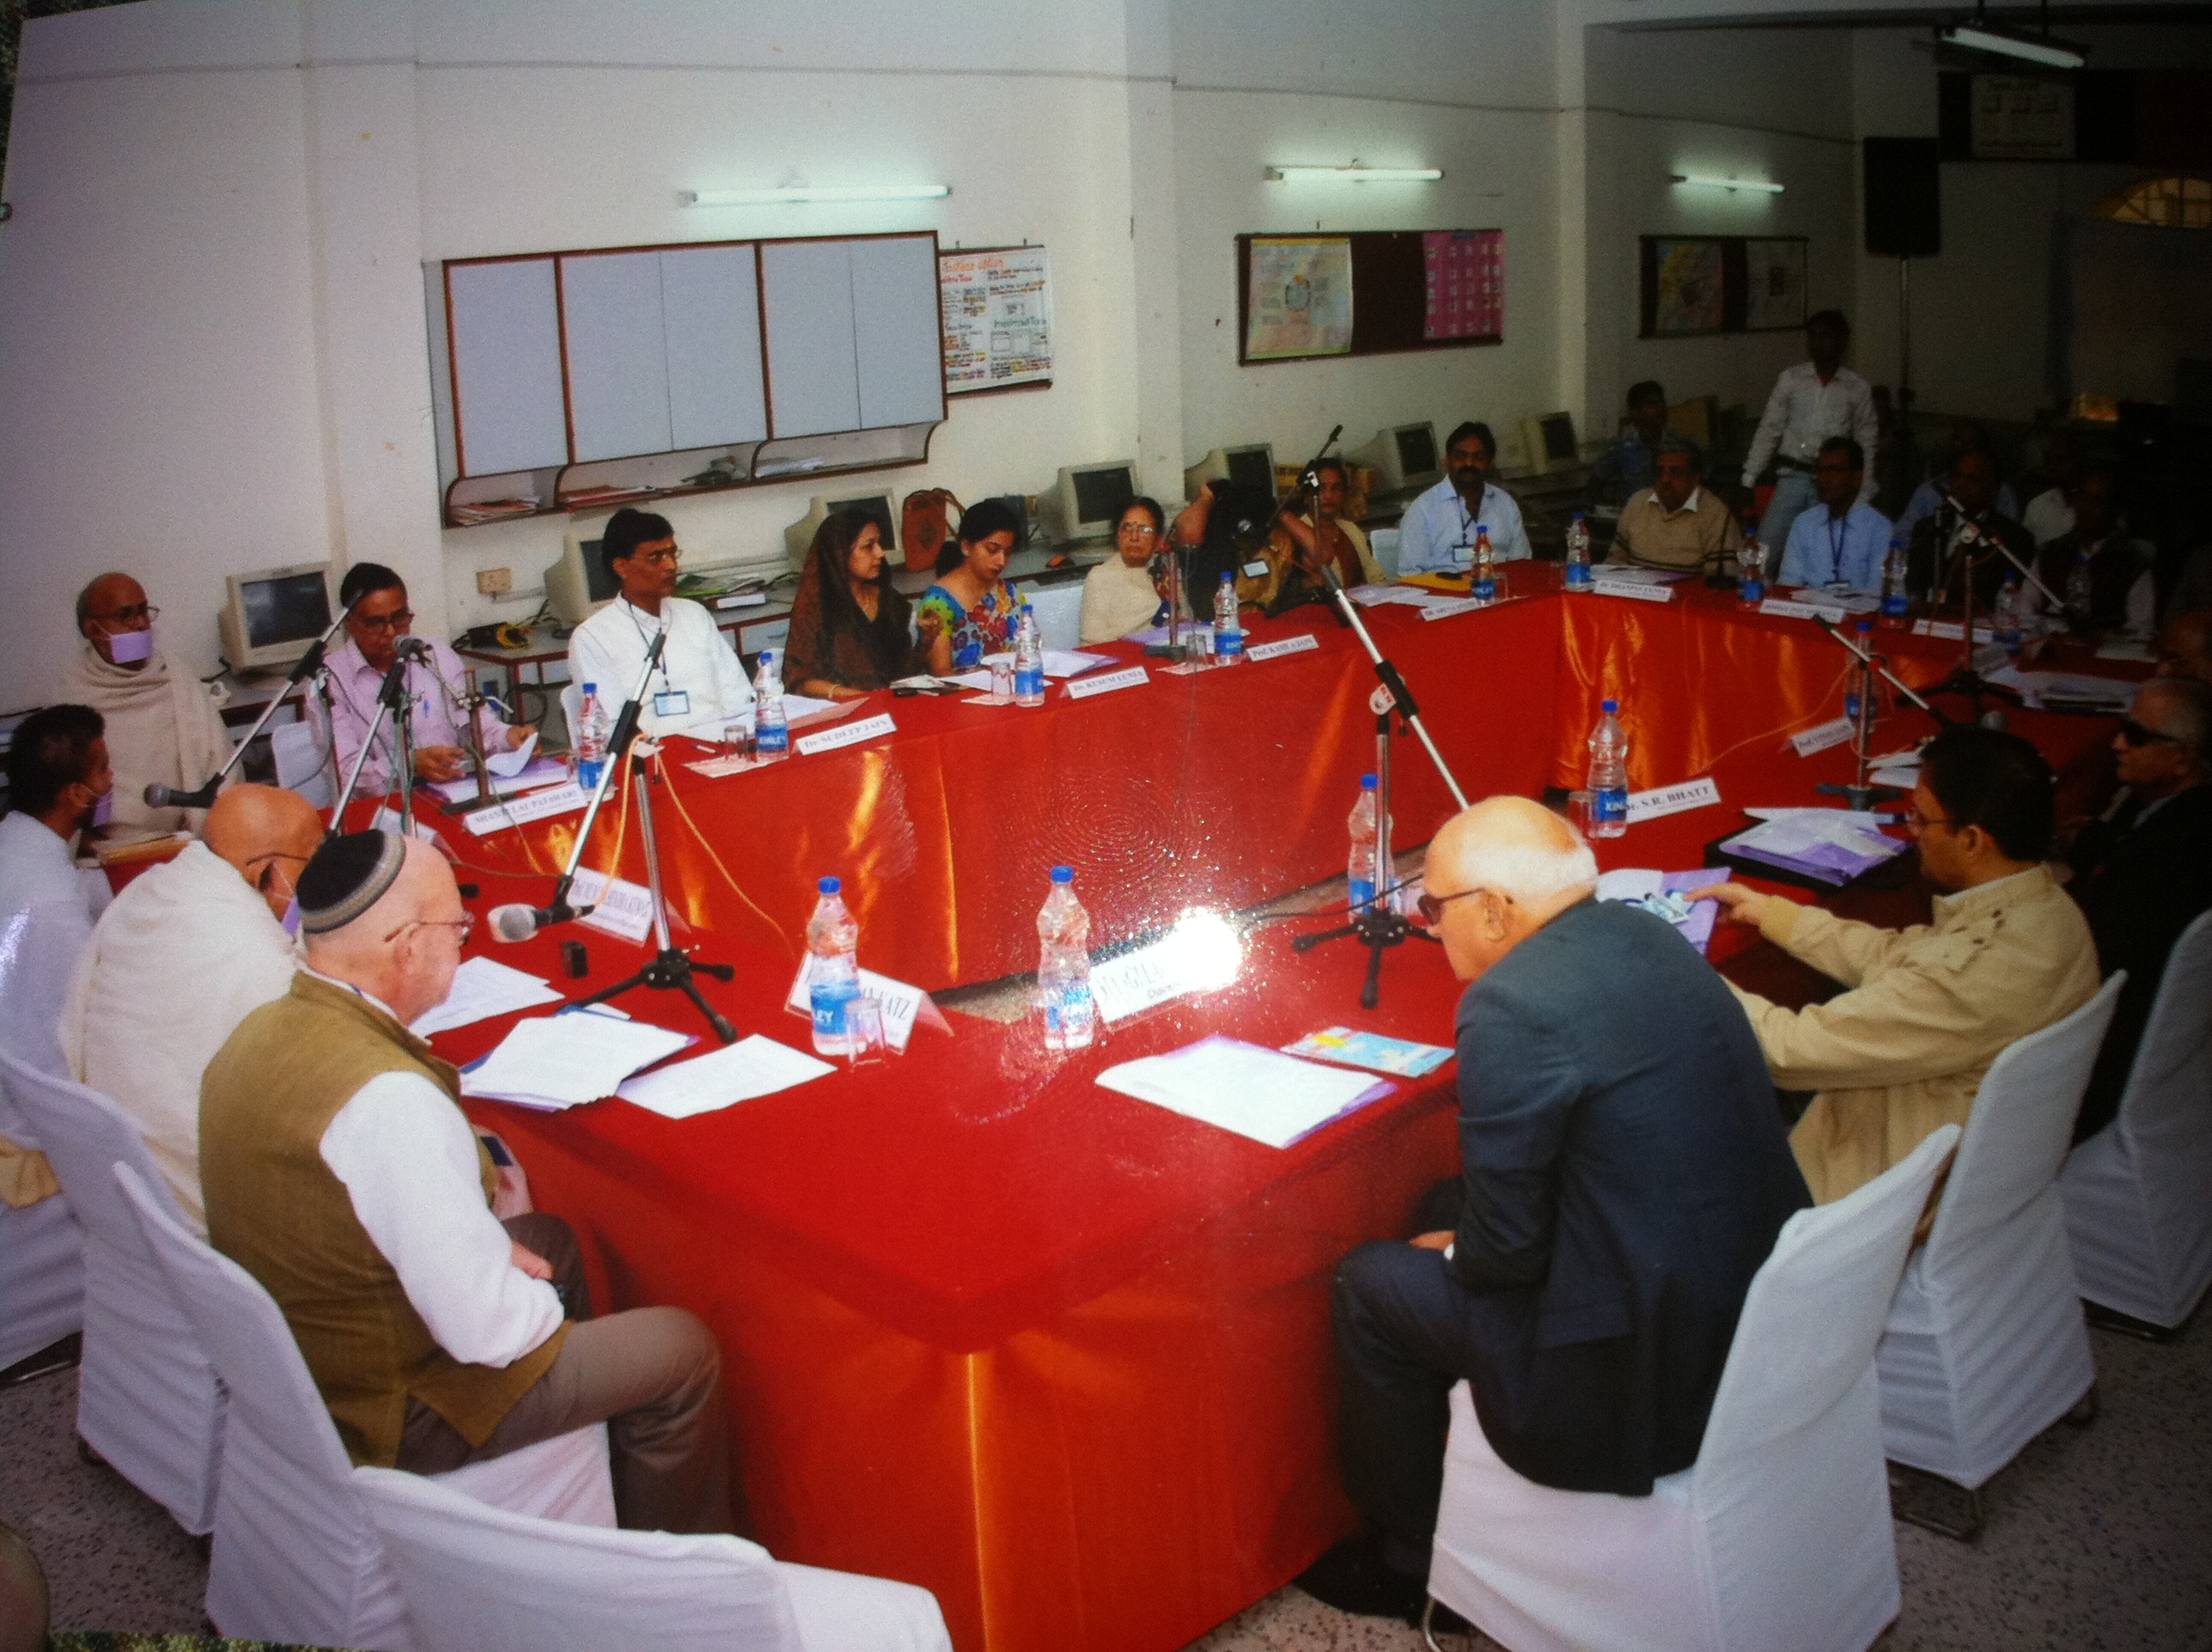 http://www.herenow4u.net/fileadmin/v3media/pics/organisations/Jain_Education_and_Research_Foundation/2010-11_Dr._Nathan_Katz_Visits_India/2010-11-25_Delhi_-_Seminar_and_Meeting_with_Prof._Muni_Mahendra_Kumar02.JPG